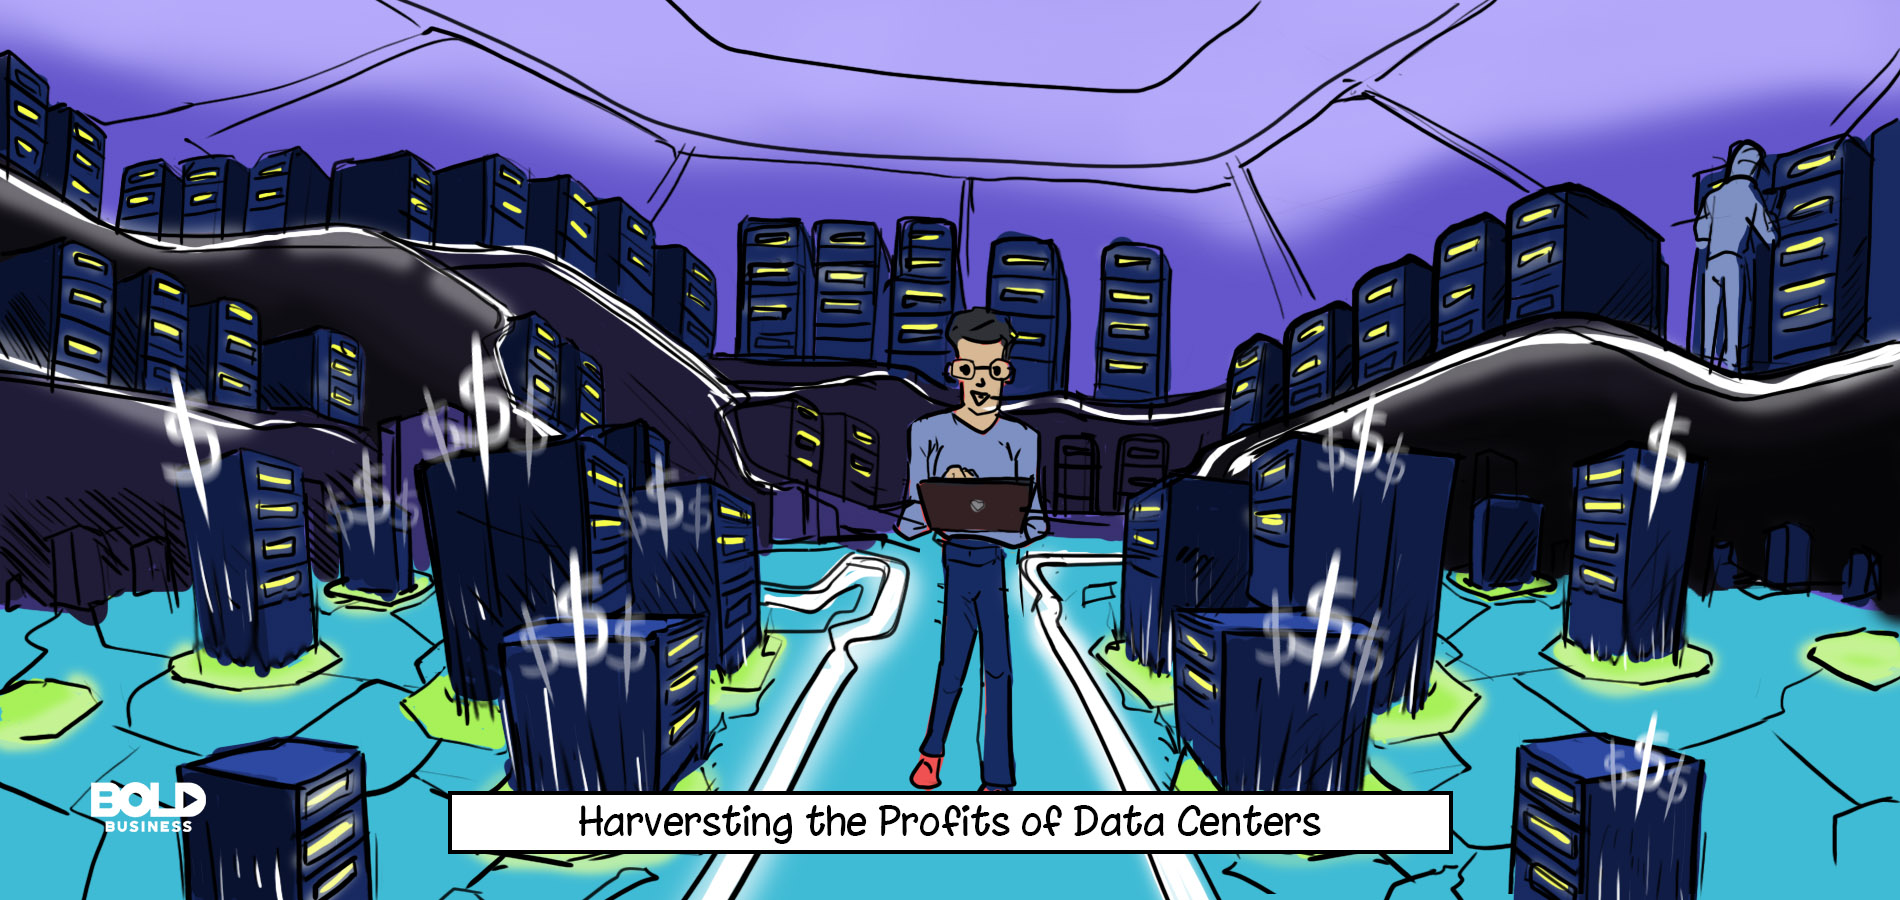 cartoon of a man with a laptop working on harvesting data while standing in a room full of new data center technologies